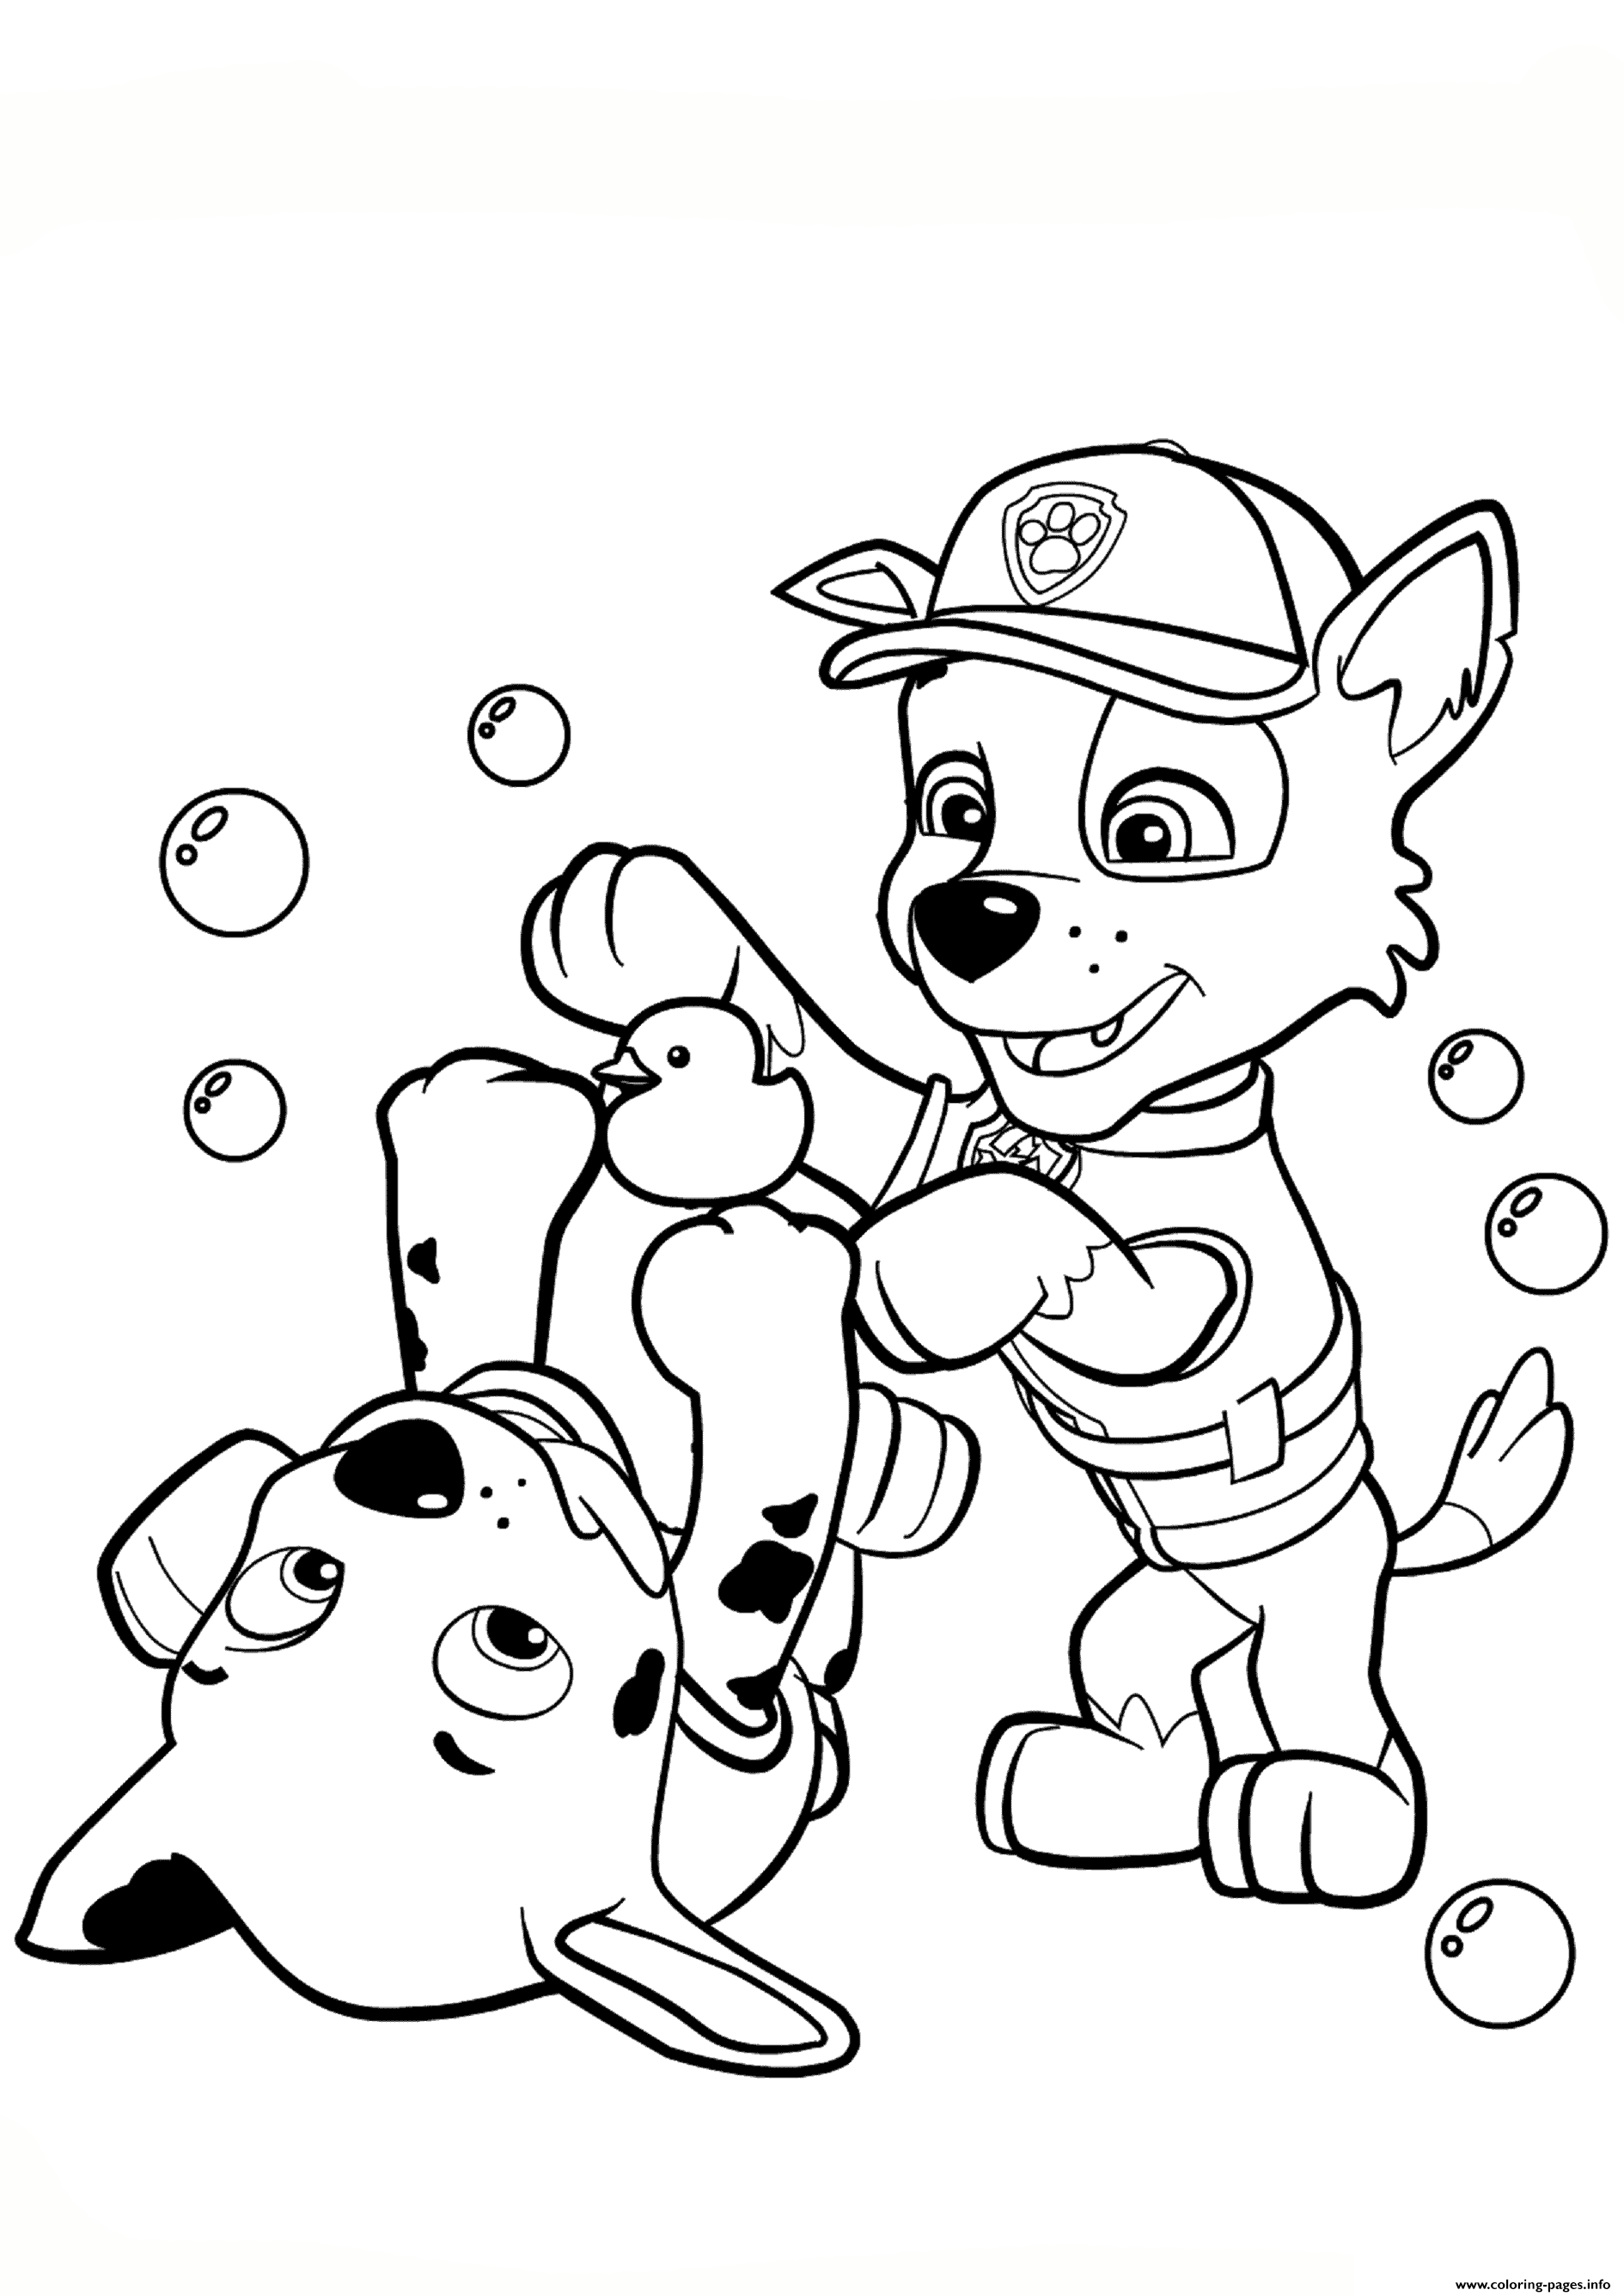 Paw Patrol Rocky And Marshall coloring pages